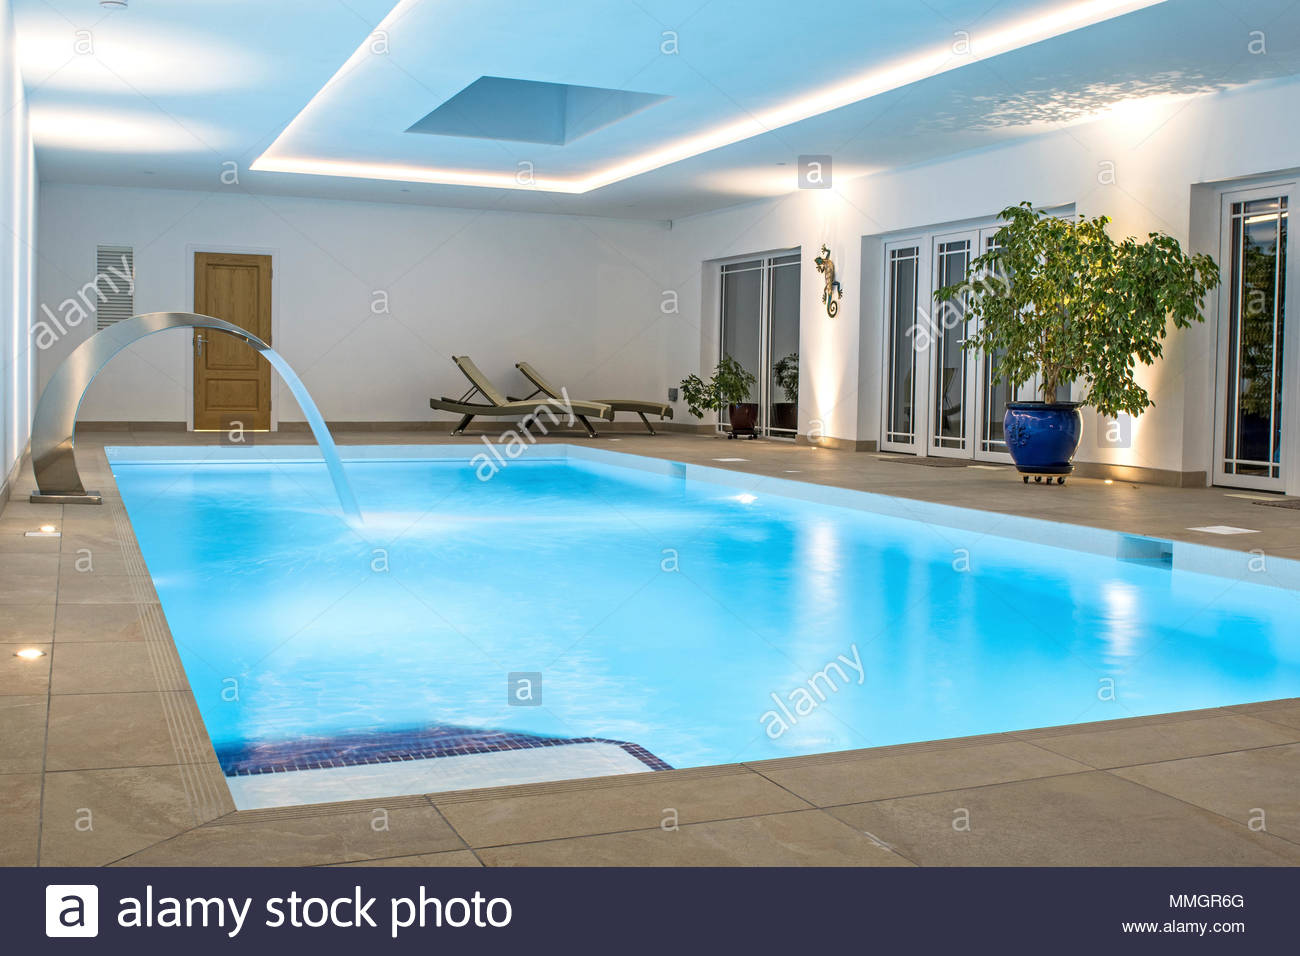 Luxury indoor swimming pool. Private pool, perfect for relaxation or ...